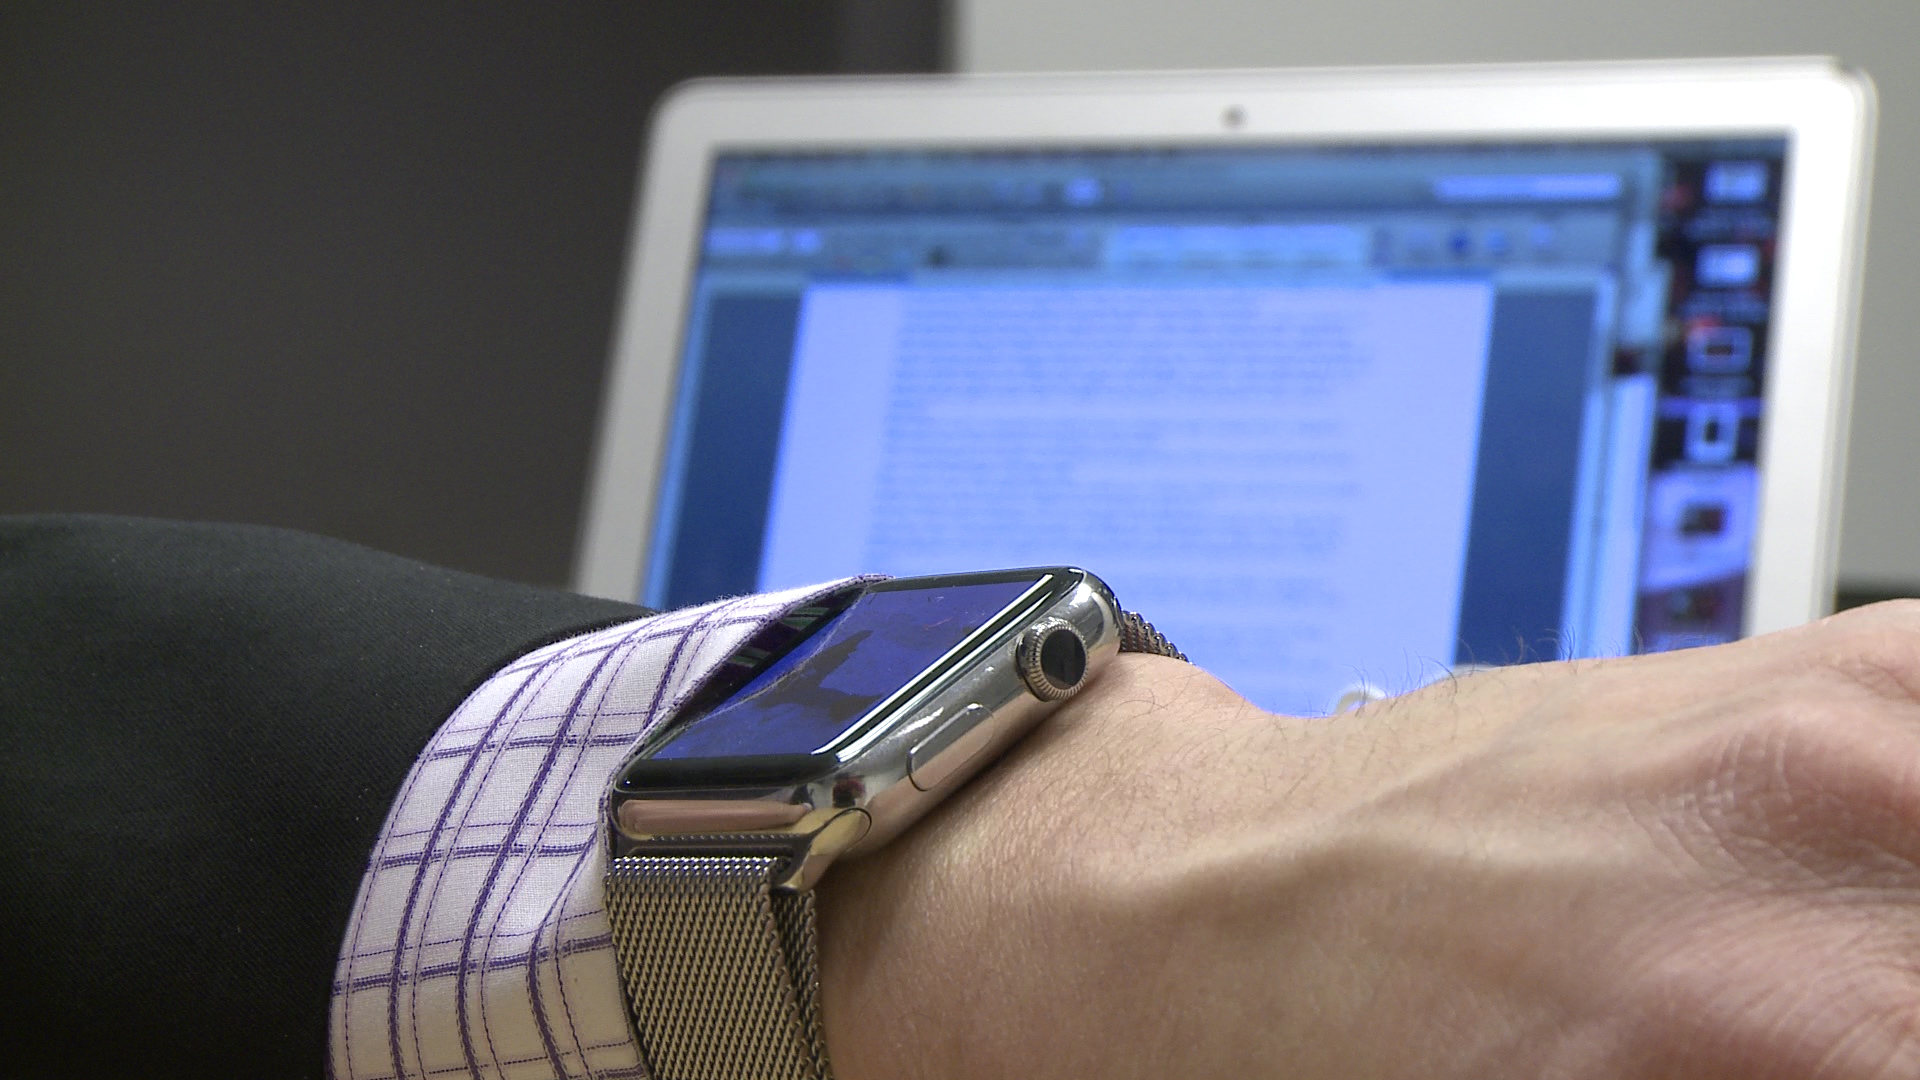 Interacting with the Apple Watch